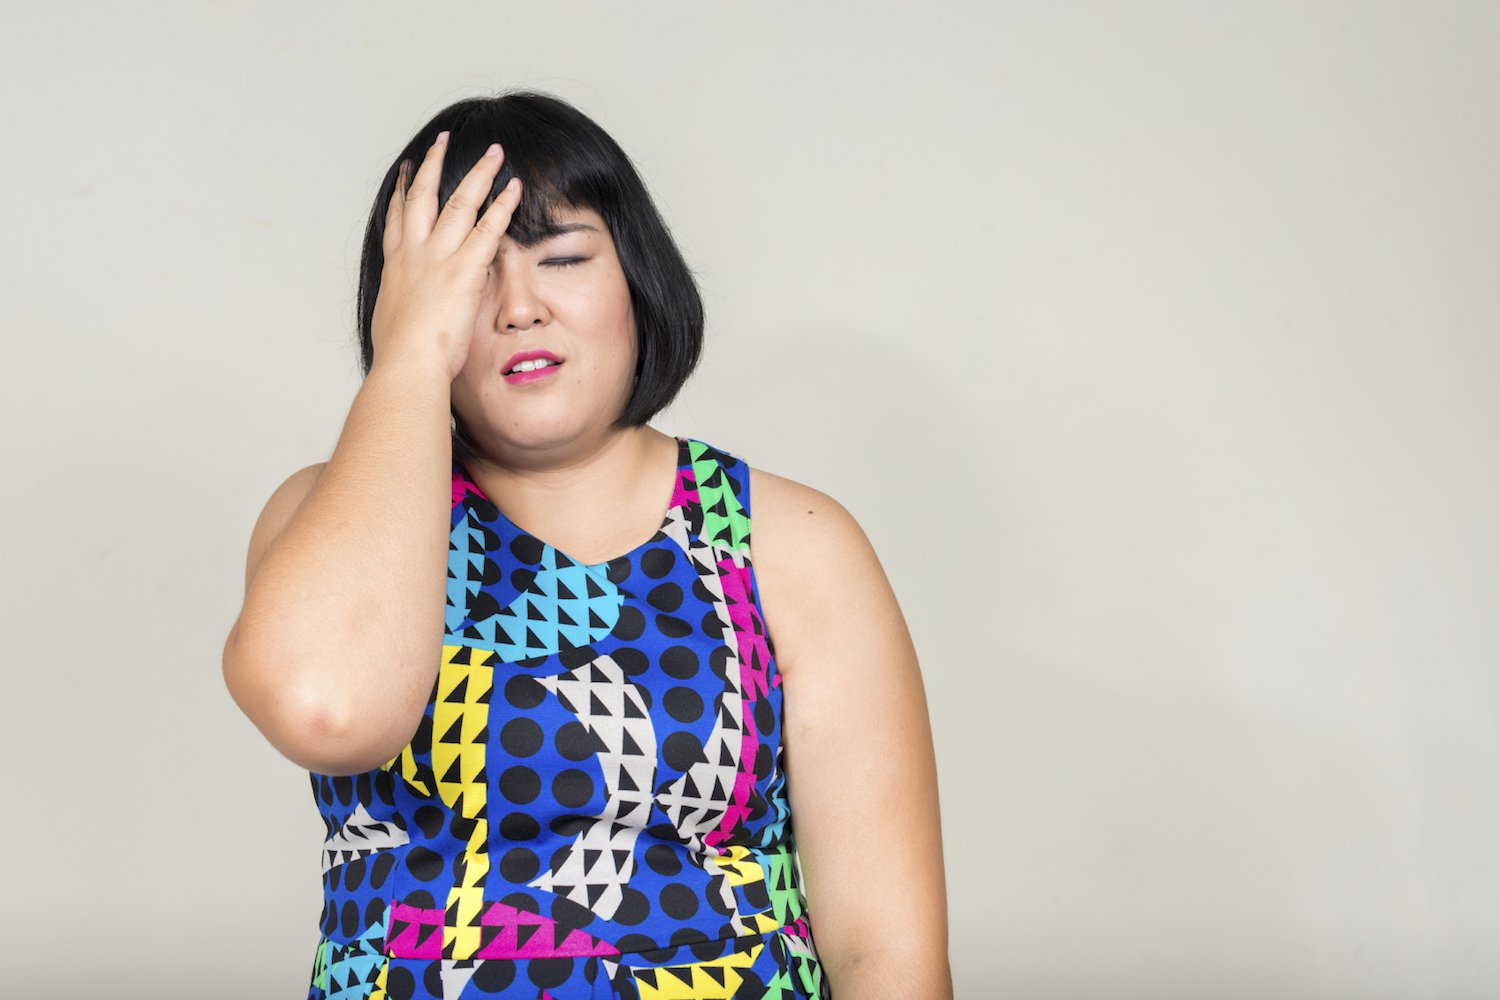 Fat-shaming can worsen people's health. Image credit: iStock / Everyday Feminism Magazine